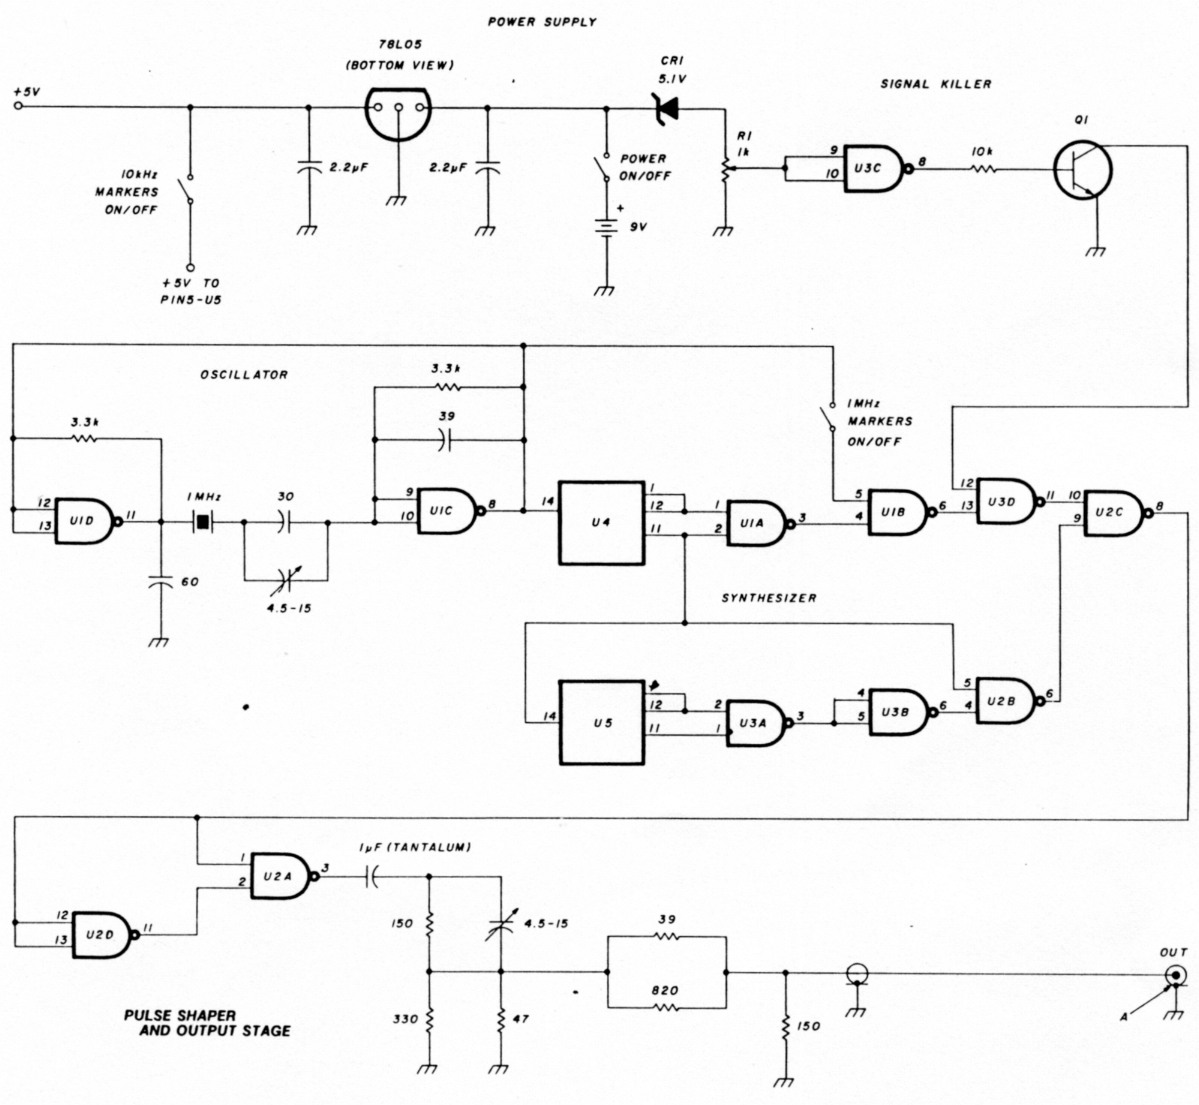 A Frequency And Level Standard Coax Cable Schematic The Entire Circuit Battery Included Is Contained In Closed Metal Box Which Electrically Connected To Ground Only Through Coaxial